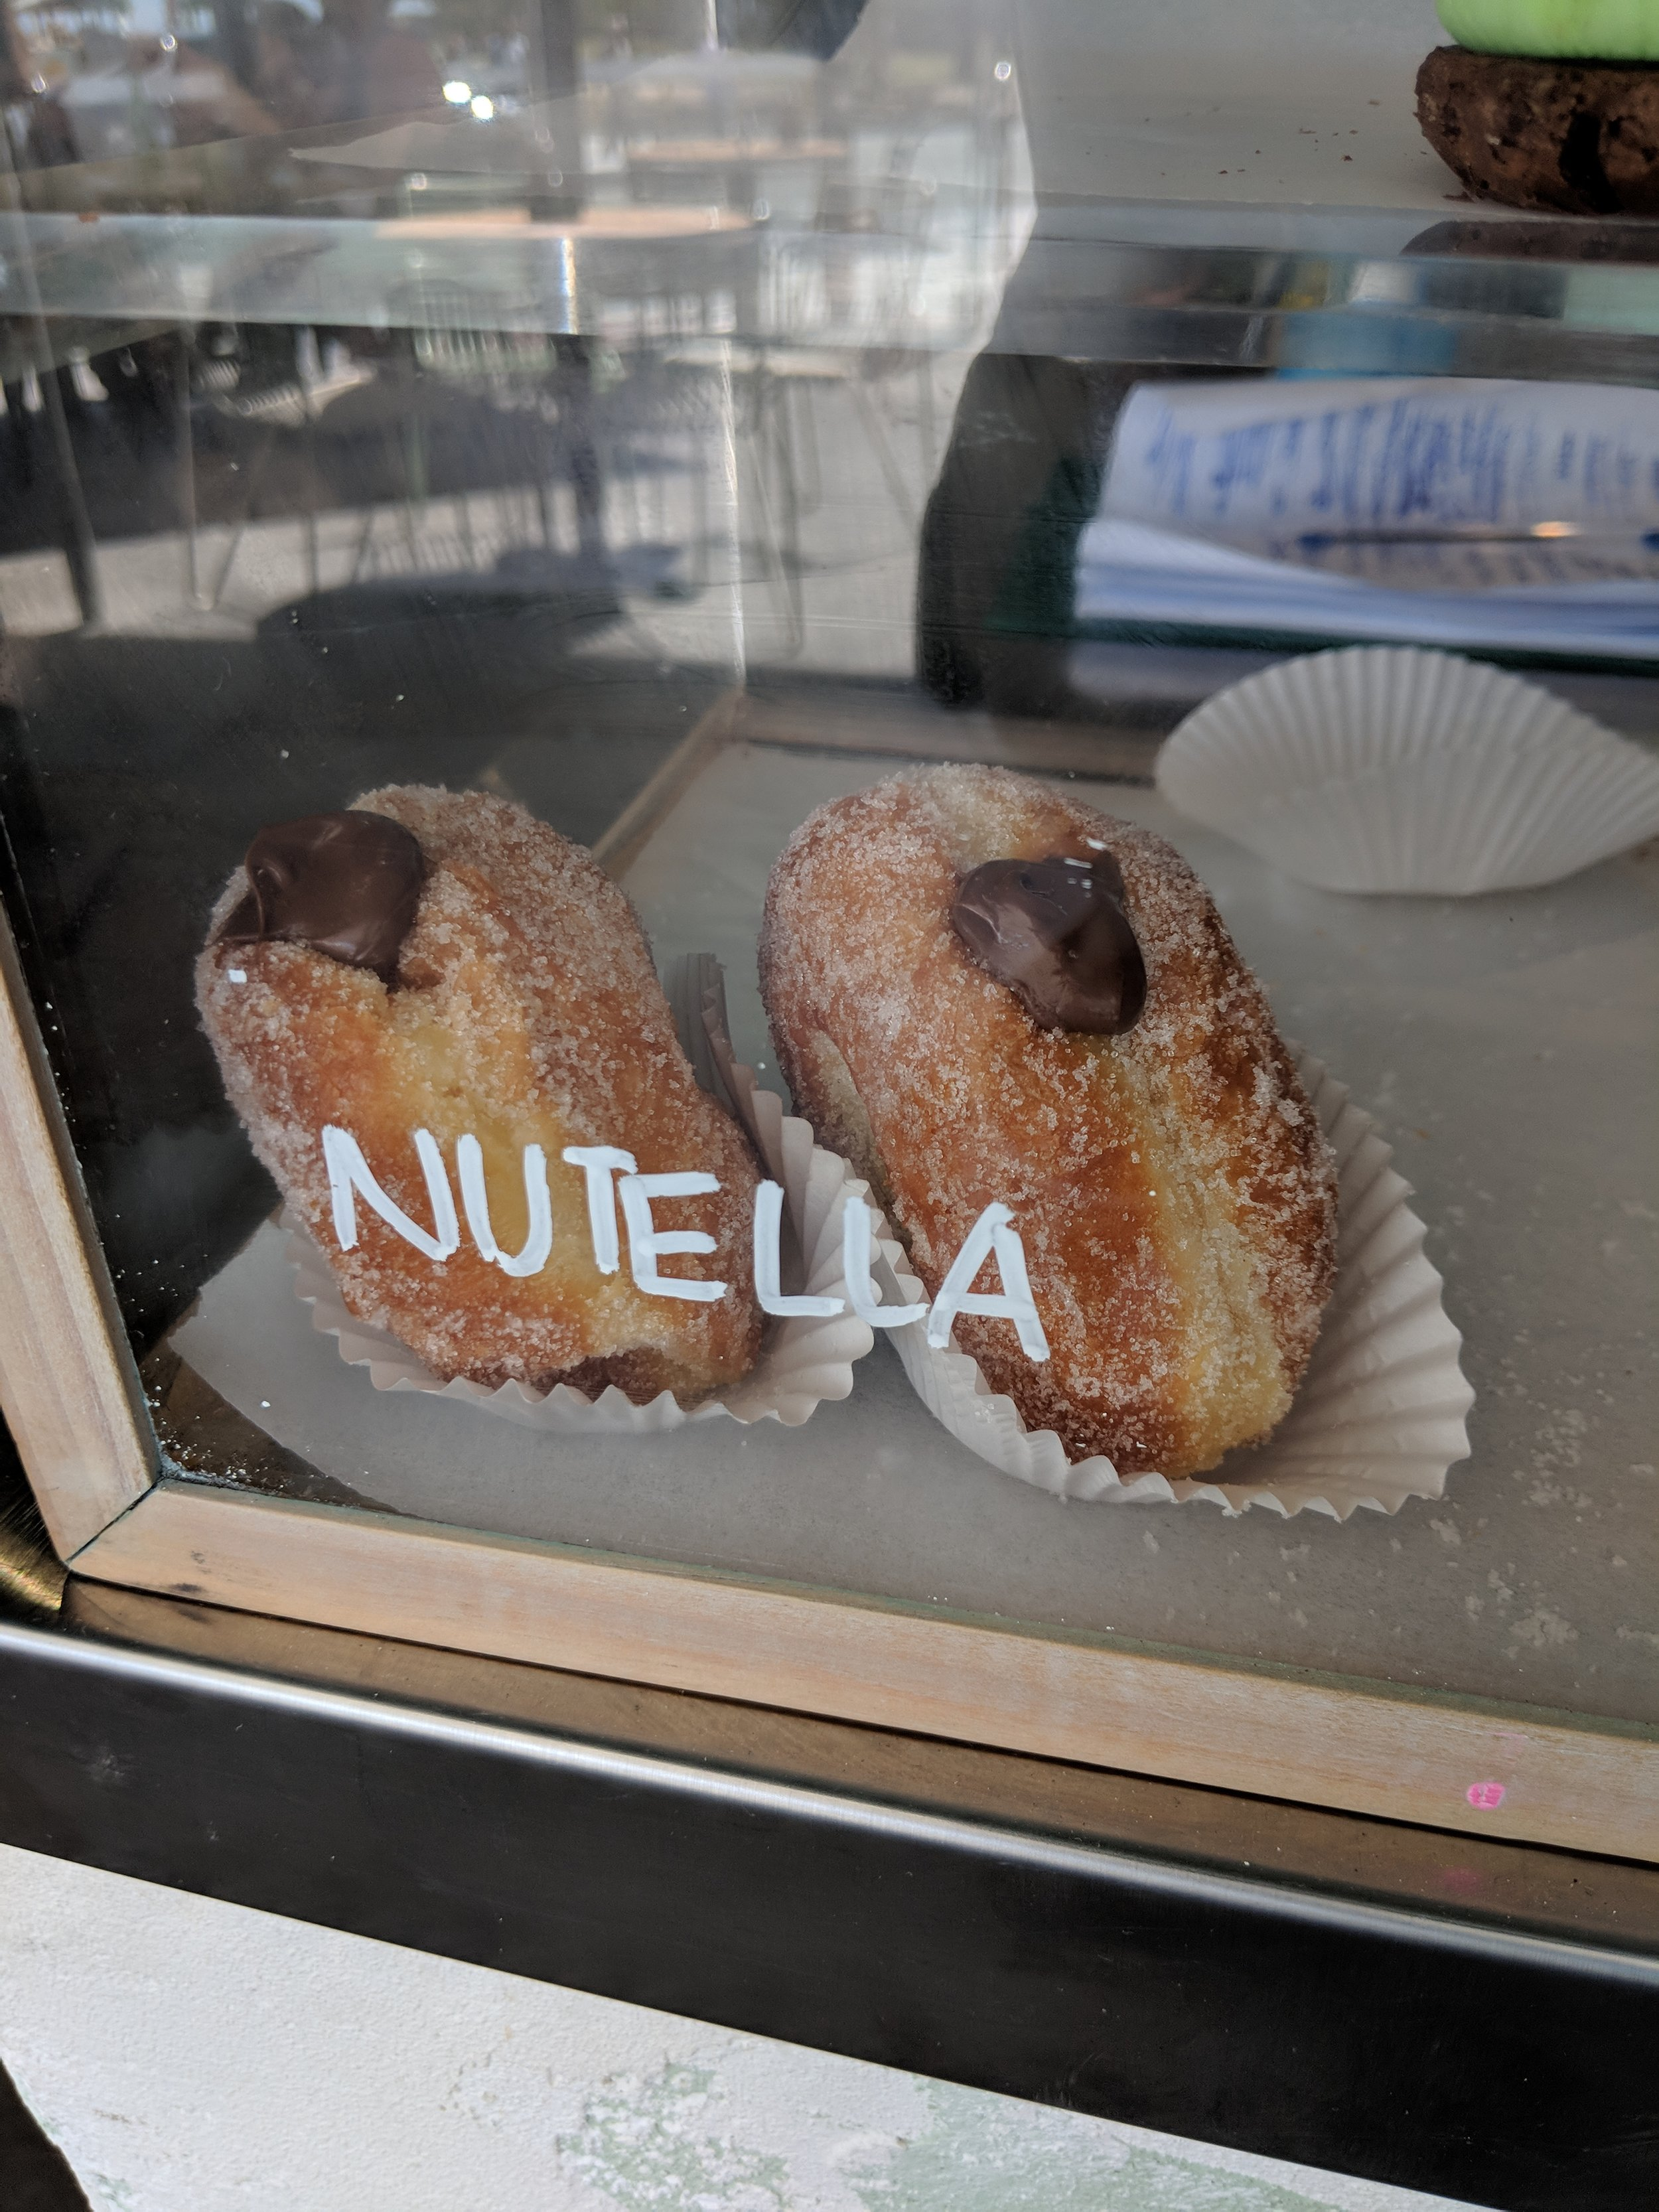 Nutella infused donut